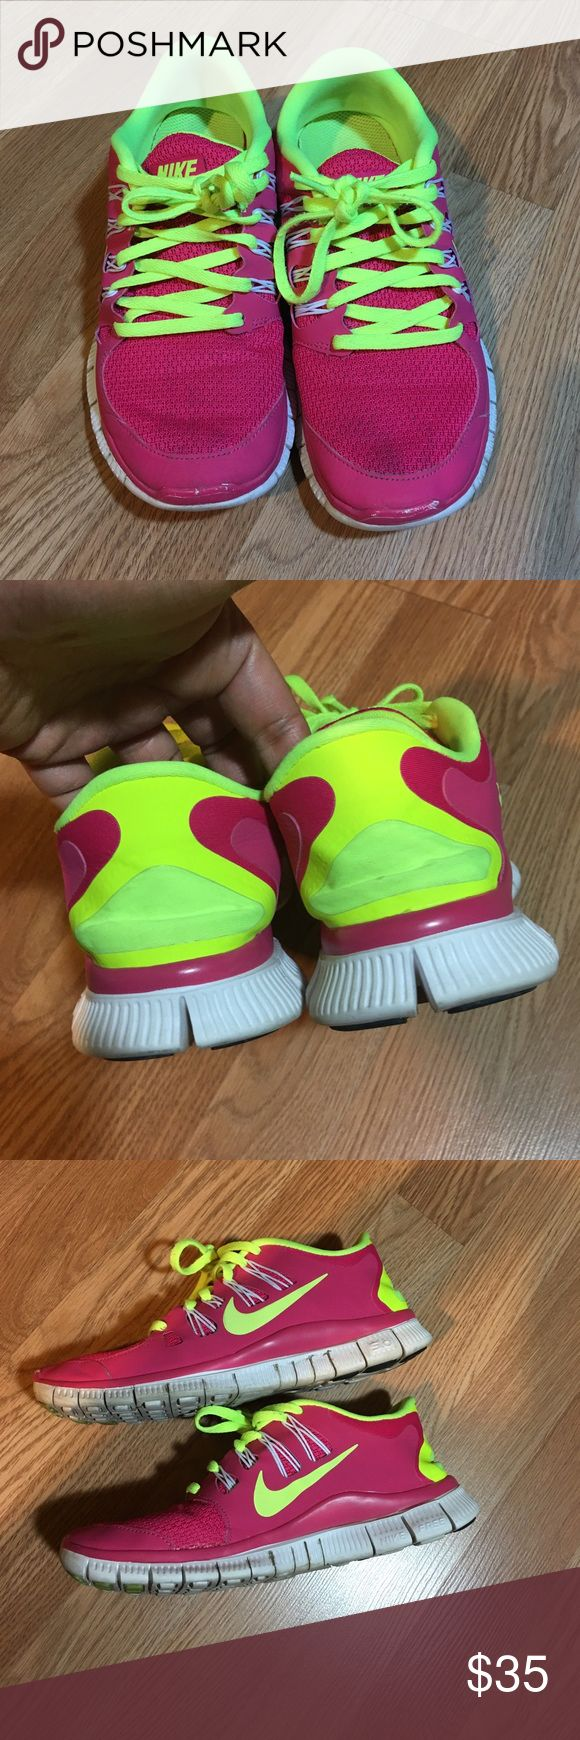 Nike Free 5.0 Women's Shoes Some wear but still in good condition. Pink with neon yellow. Very cute. Great for jogging, Running, cross training. Nike Shoes Athletic Shoes